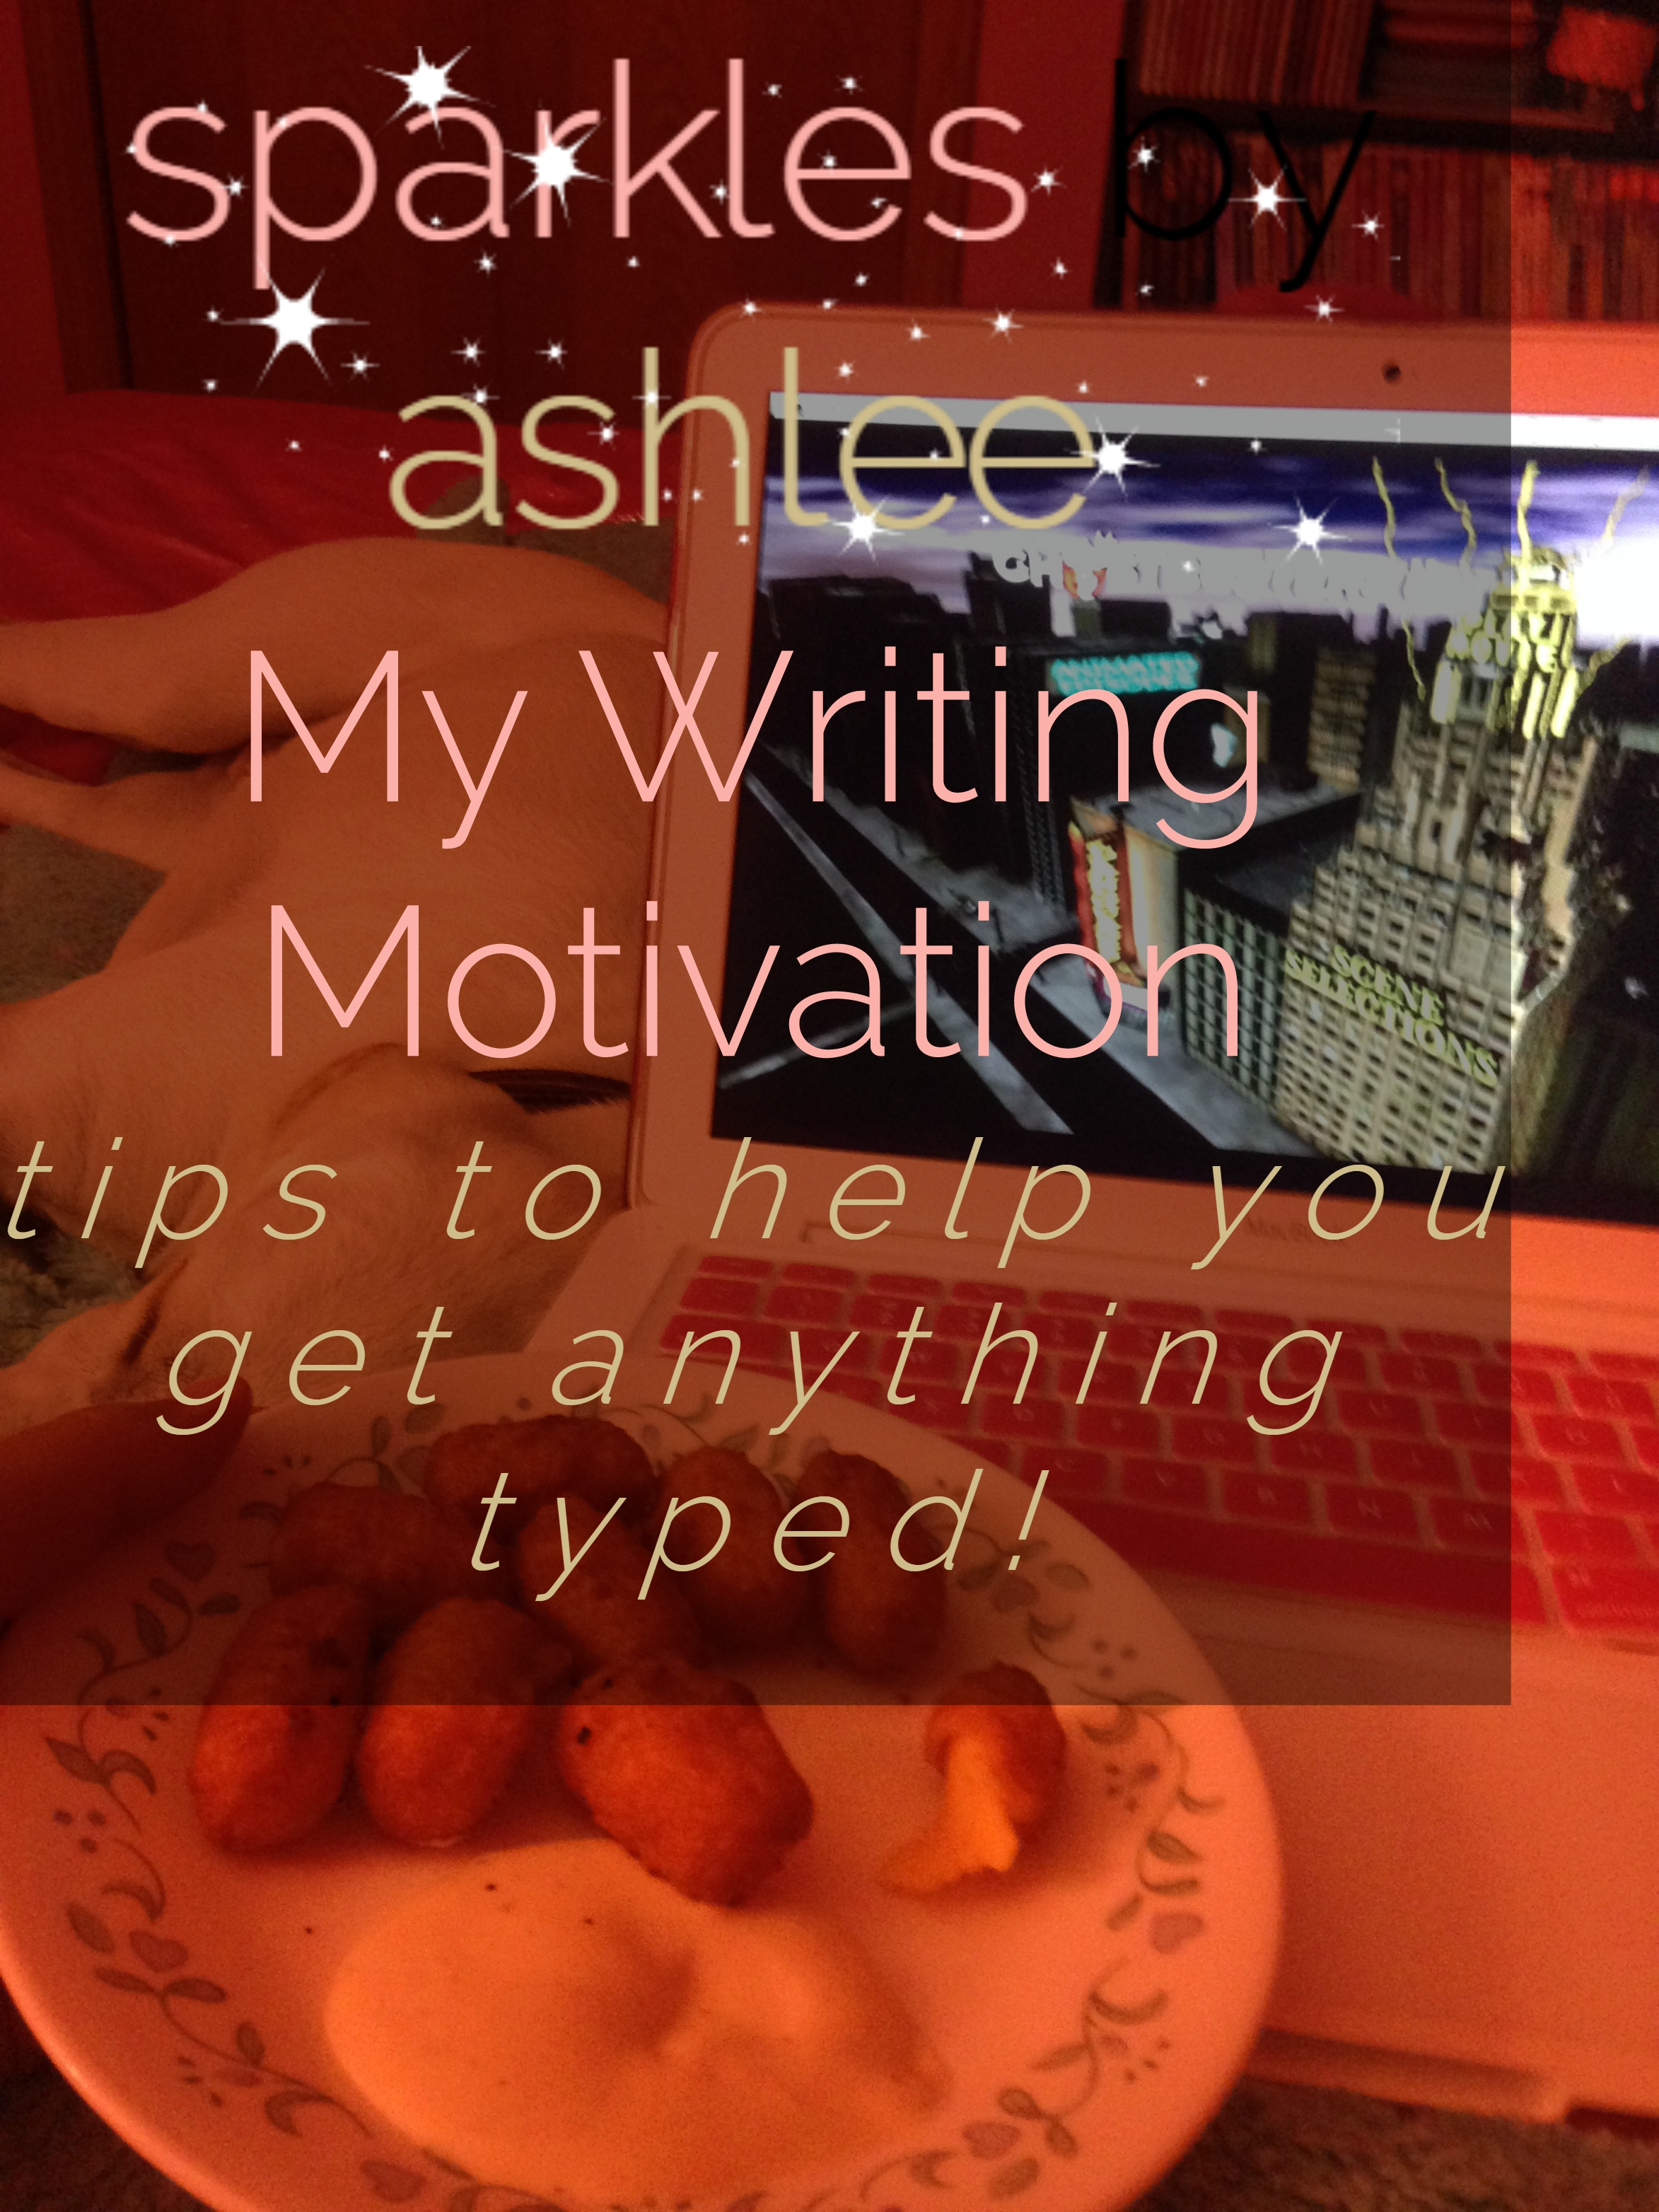 My-Writing-Motivation-Sparkles-by-Ashlee.jpg